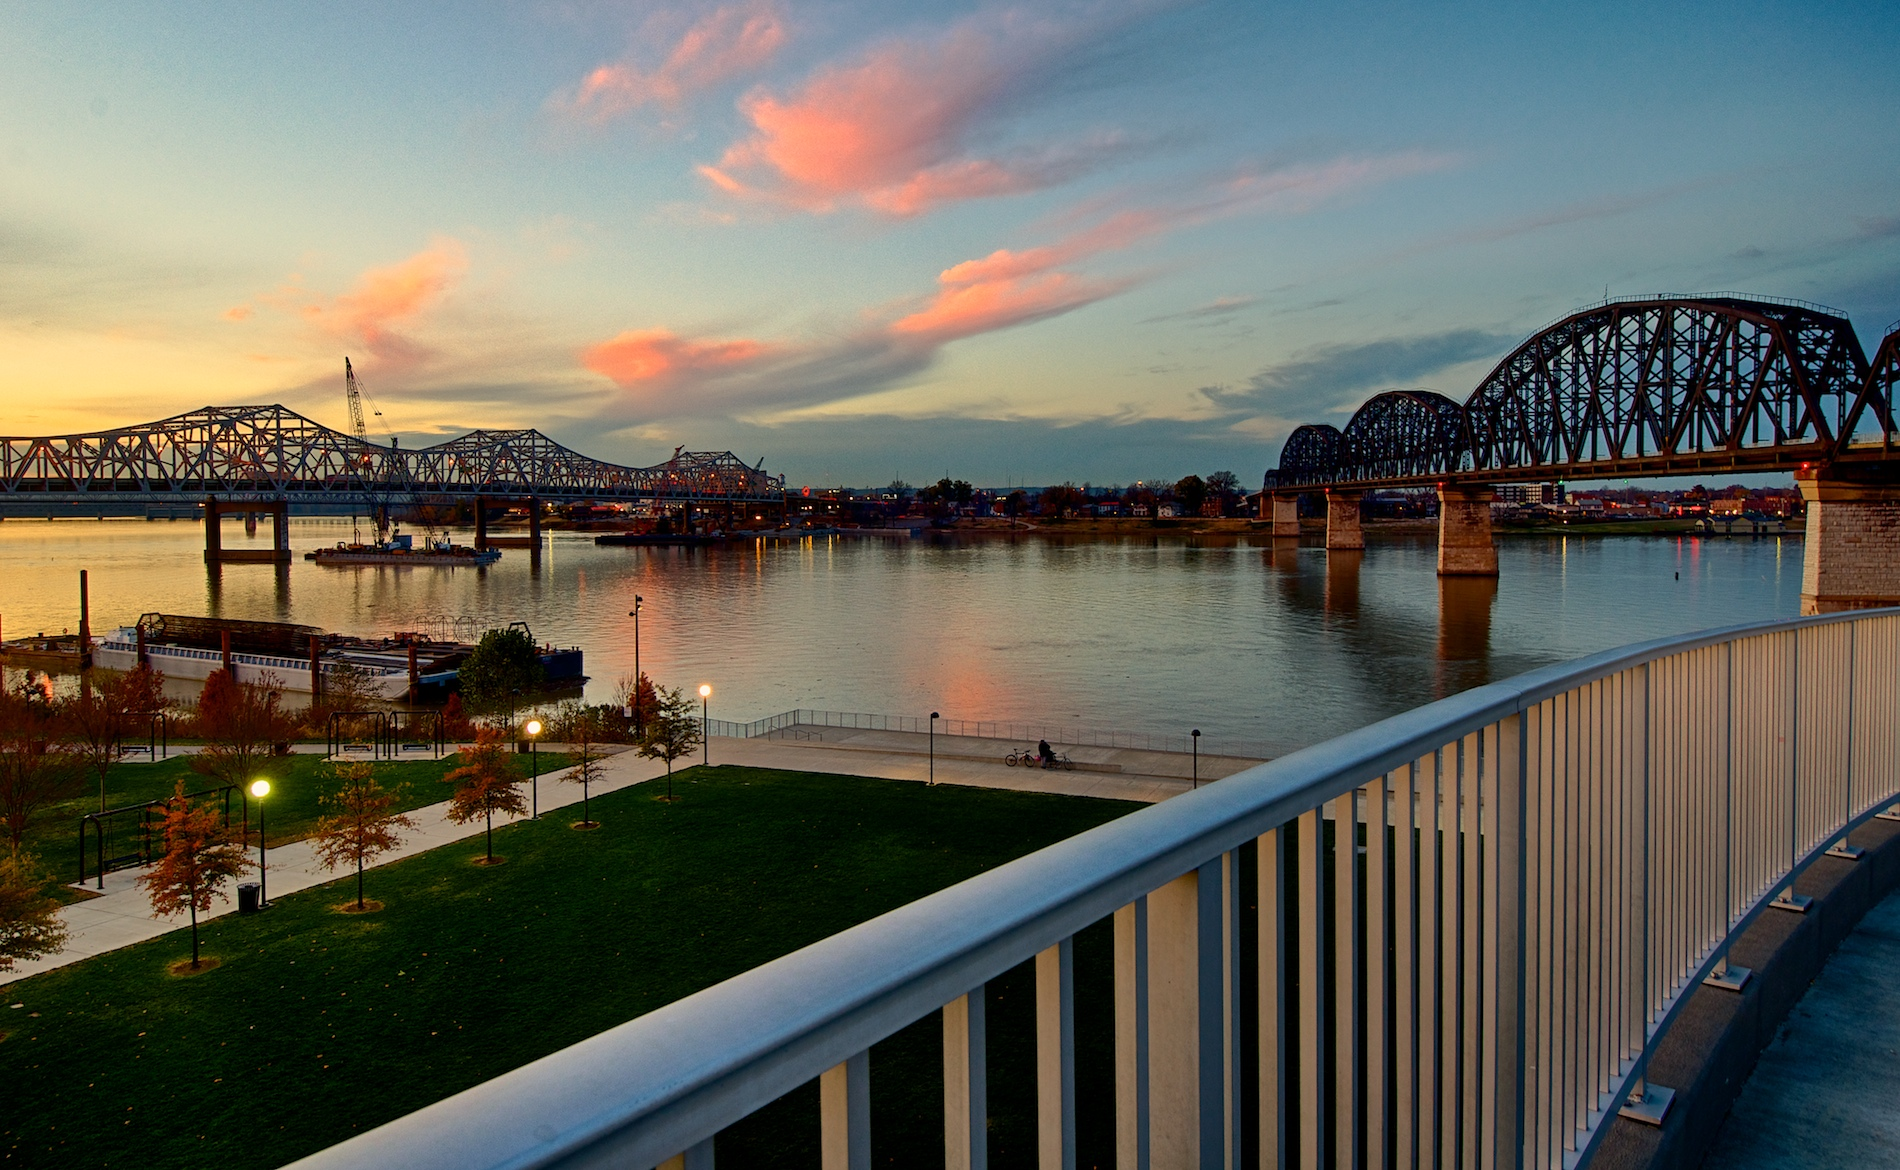 Ohio River Bridges Project at Sunset #2